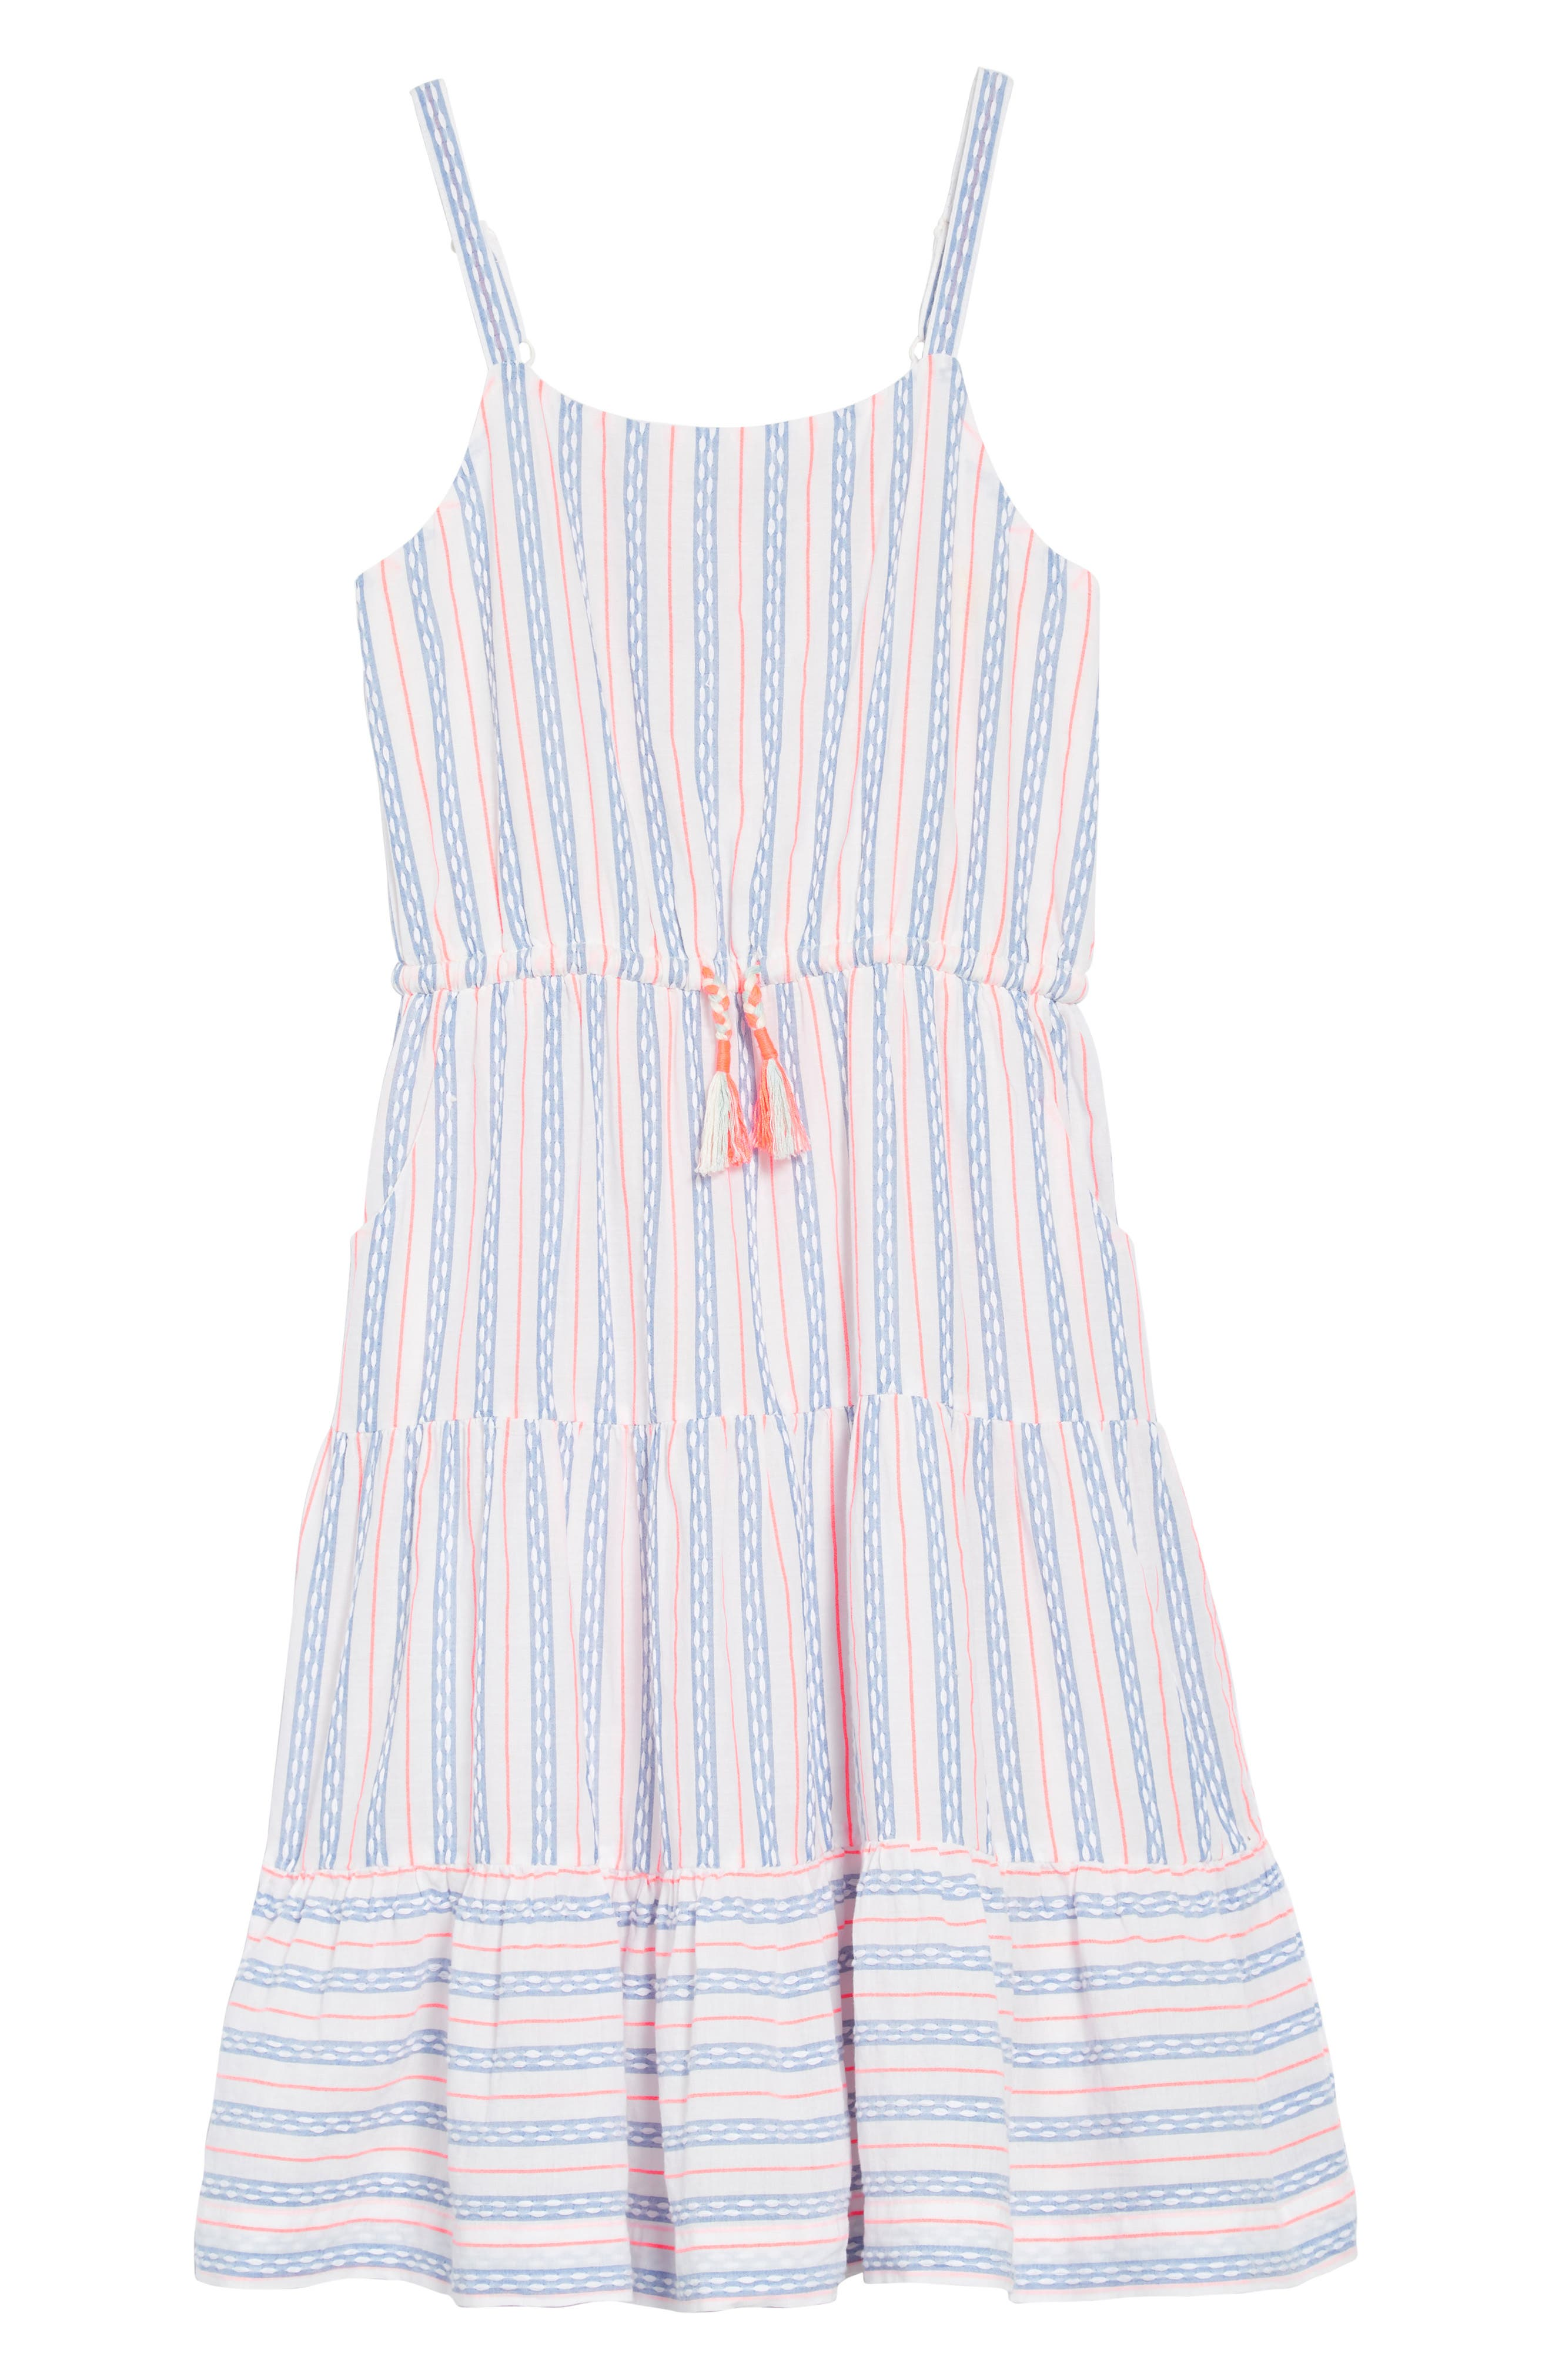 Tiered Strappy Woven Dress,                             Main thumbnail 1, color,                             Textured Blue And White Stripe